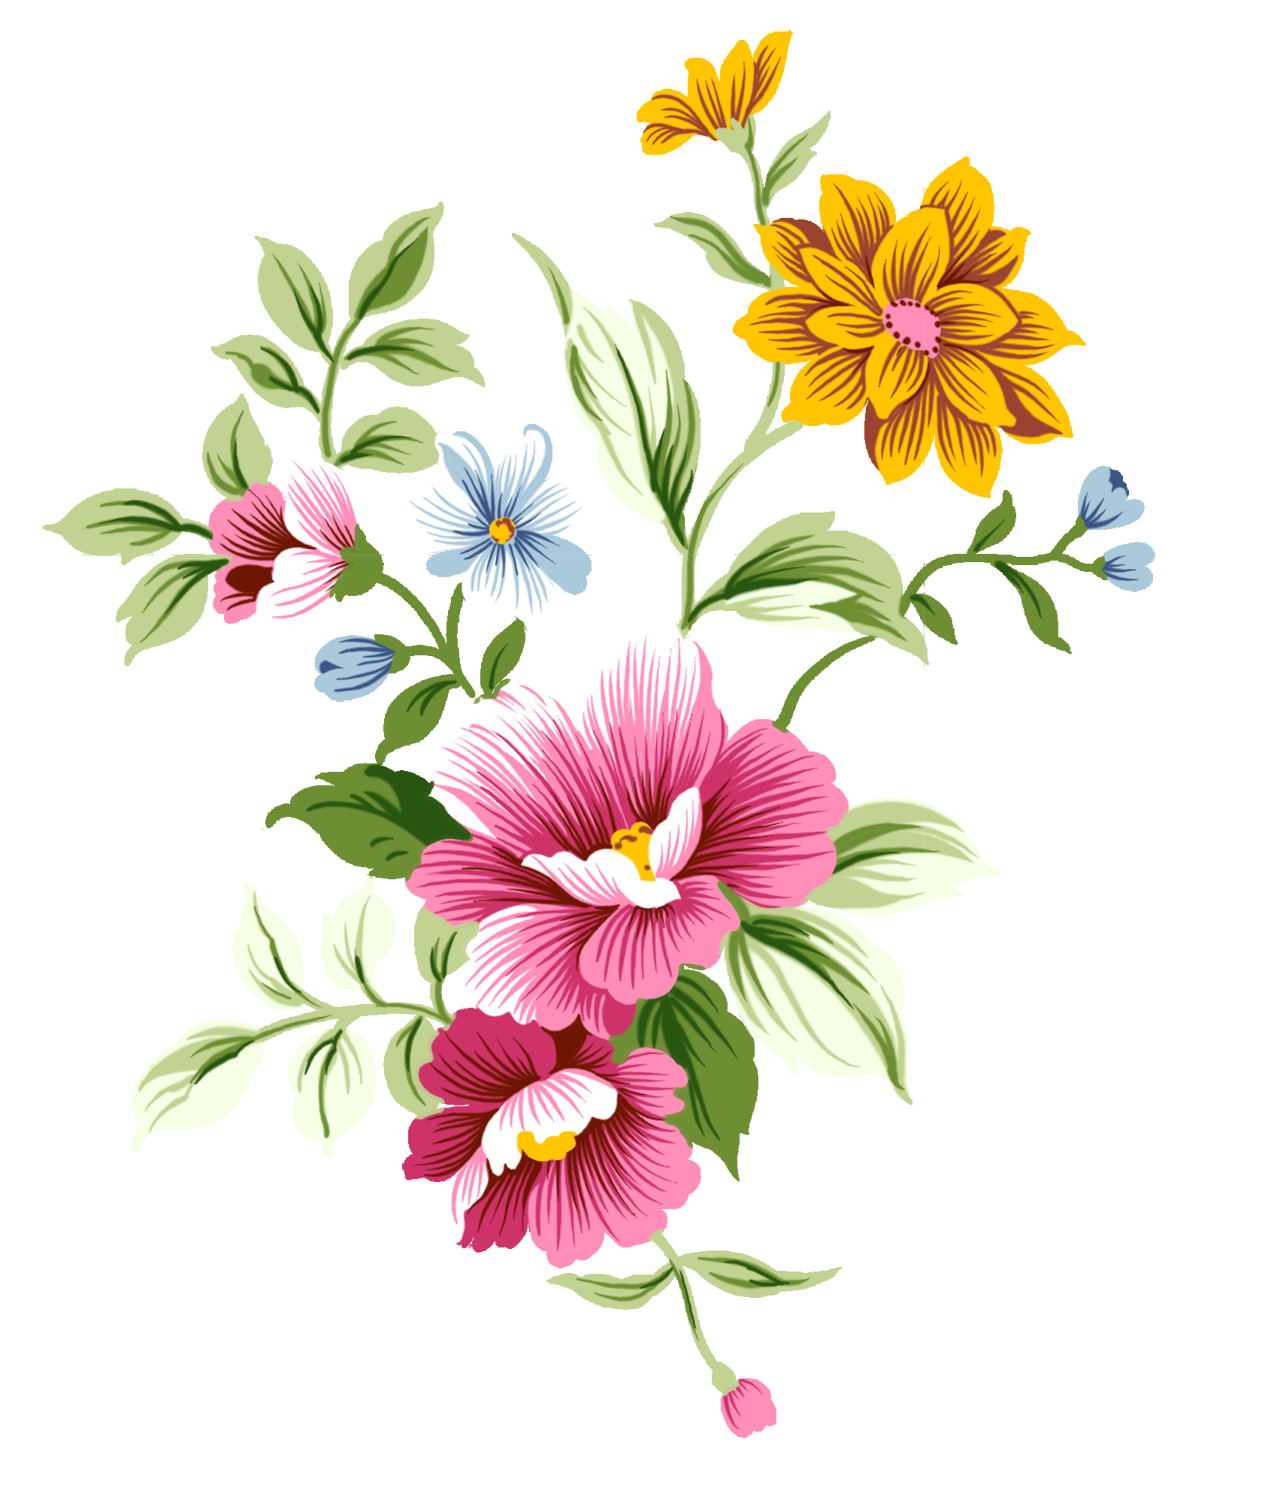 transparent flowers png